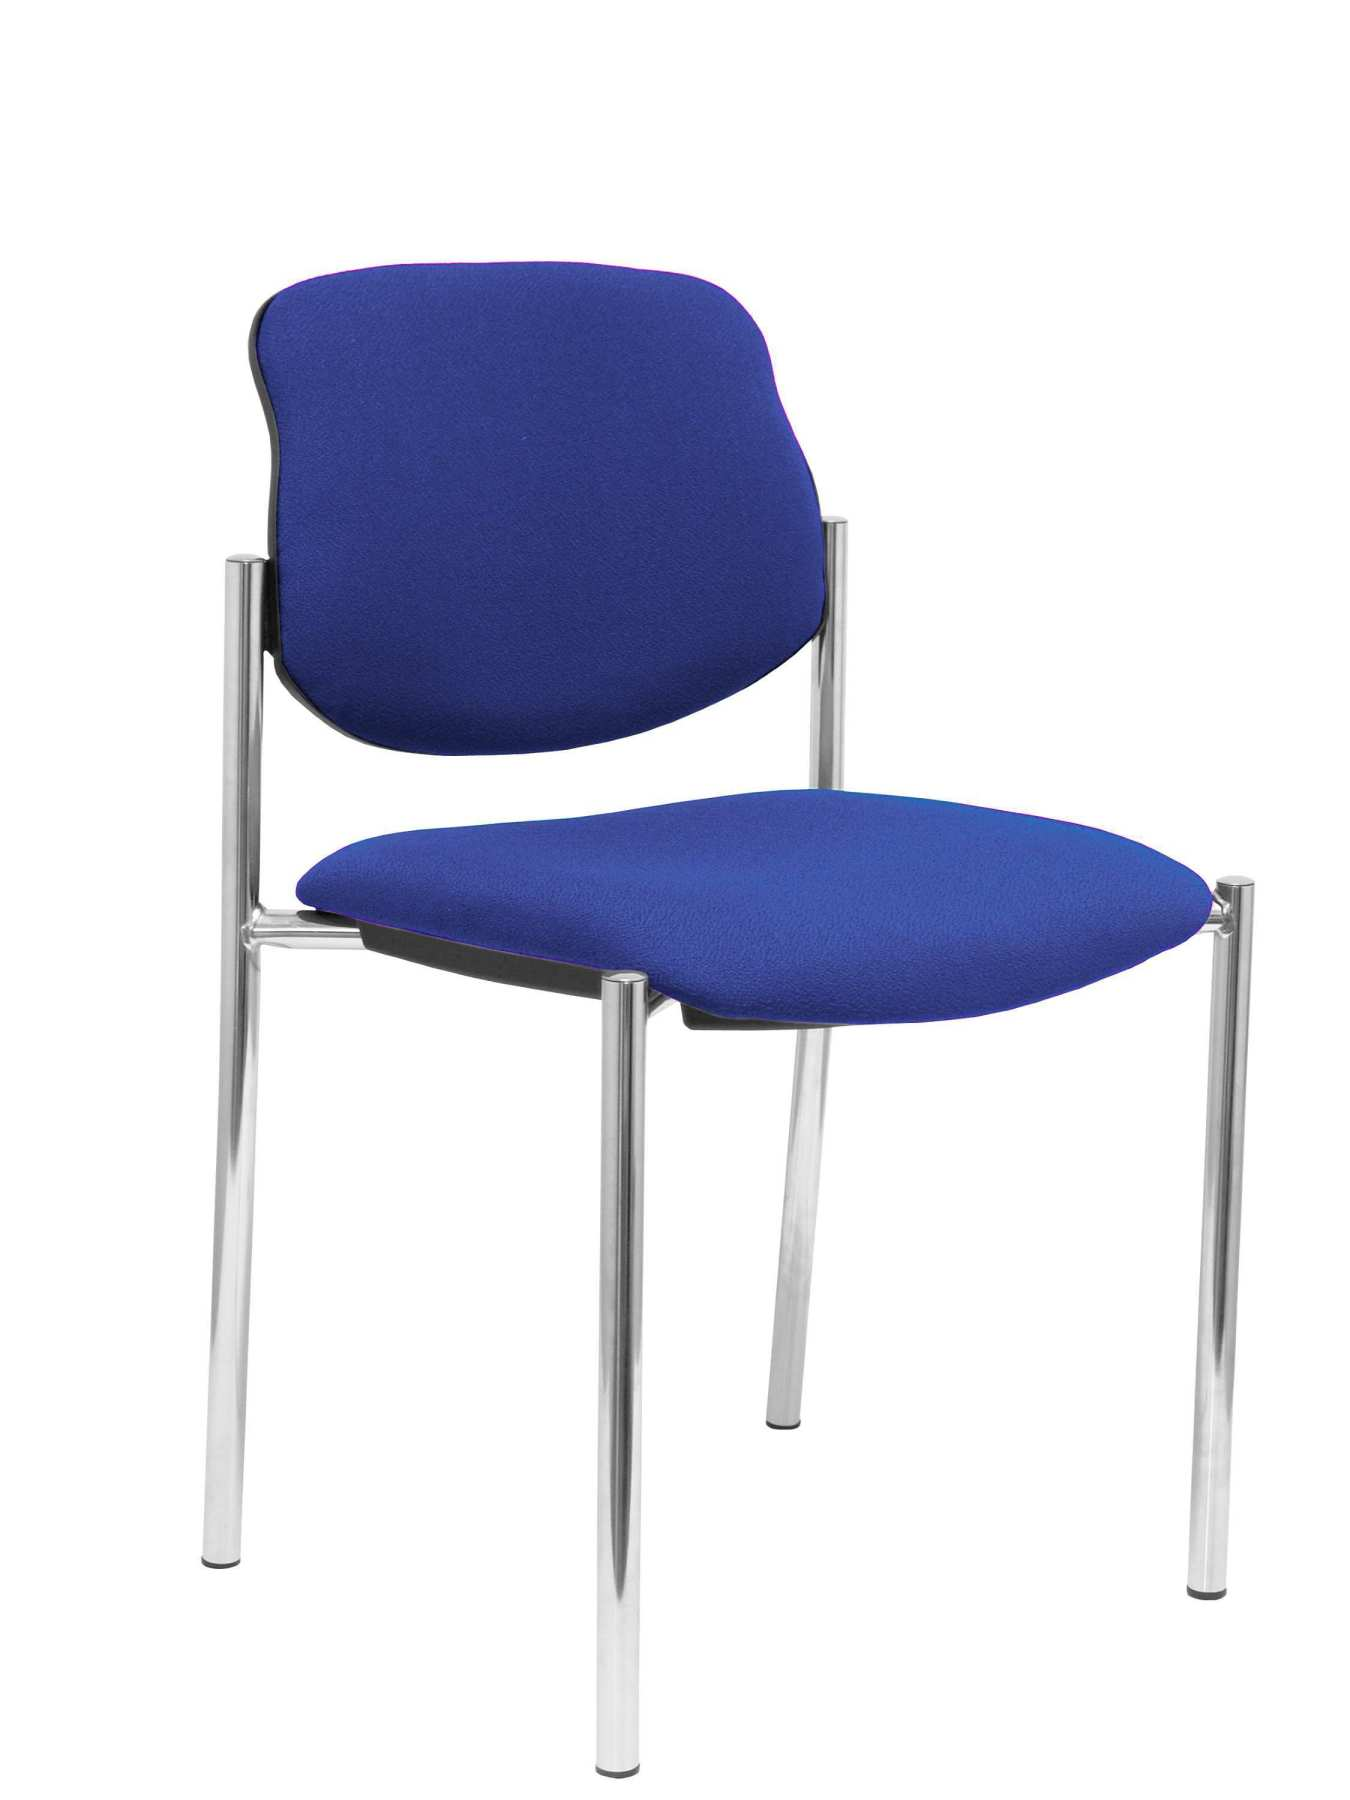 Confident Chair 4-leg And Estructrua Chrome Seat And Back Upholstered In Fabric BALI Blue PIQUERAS And CRE